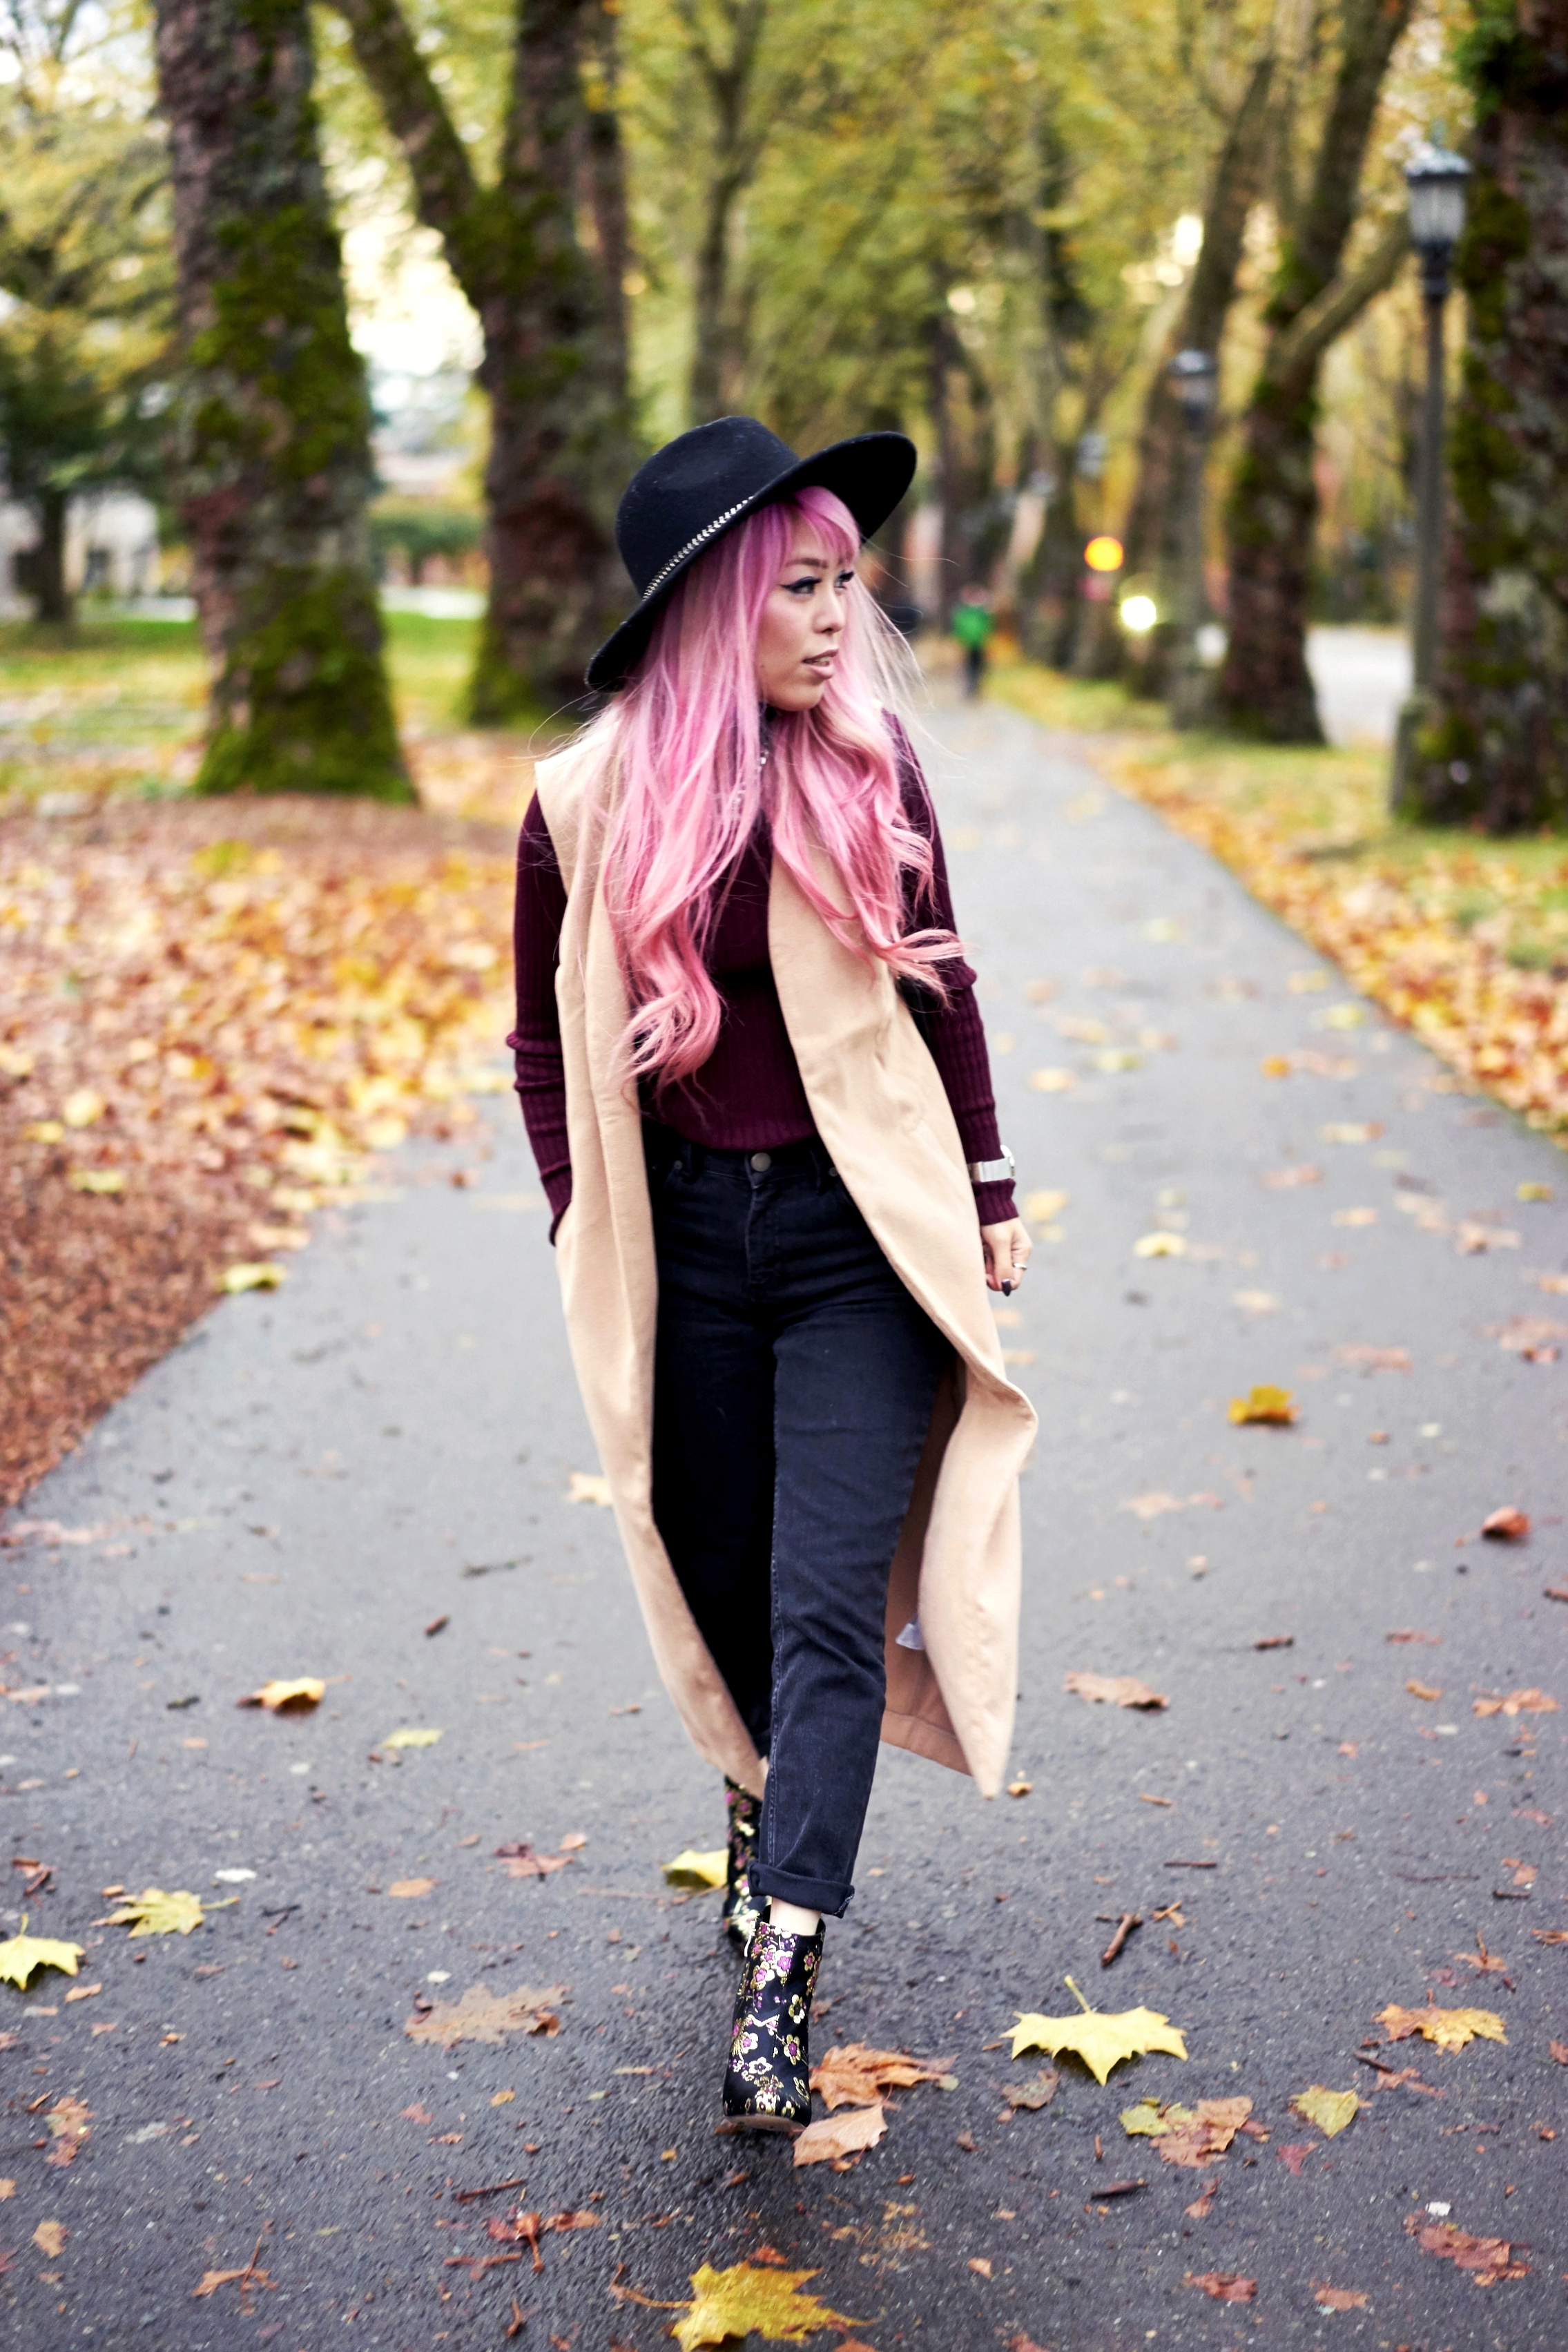 Forever 21 Fedora_Who What Wear : Target Rib Turtleneck_ASOS High Waist Mom Jeans_Ego Floral Print Ankle Boots_Christian Paul Marble Watch_Aika's Love Closet_Seattle Fashion Blogger_Japanese_Pink Hair 5